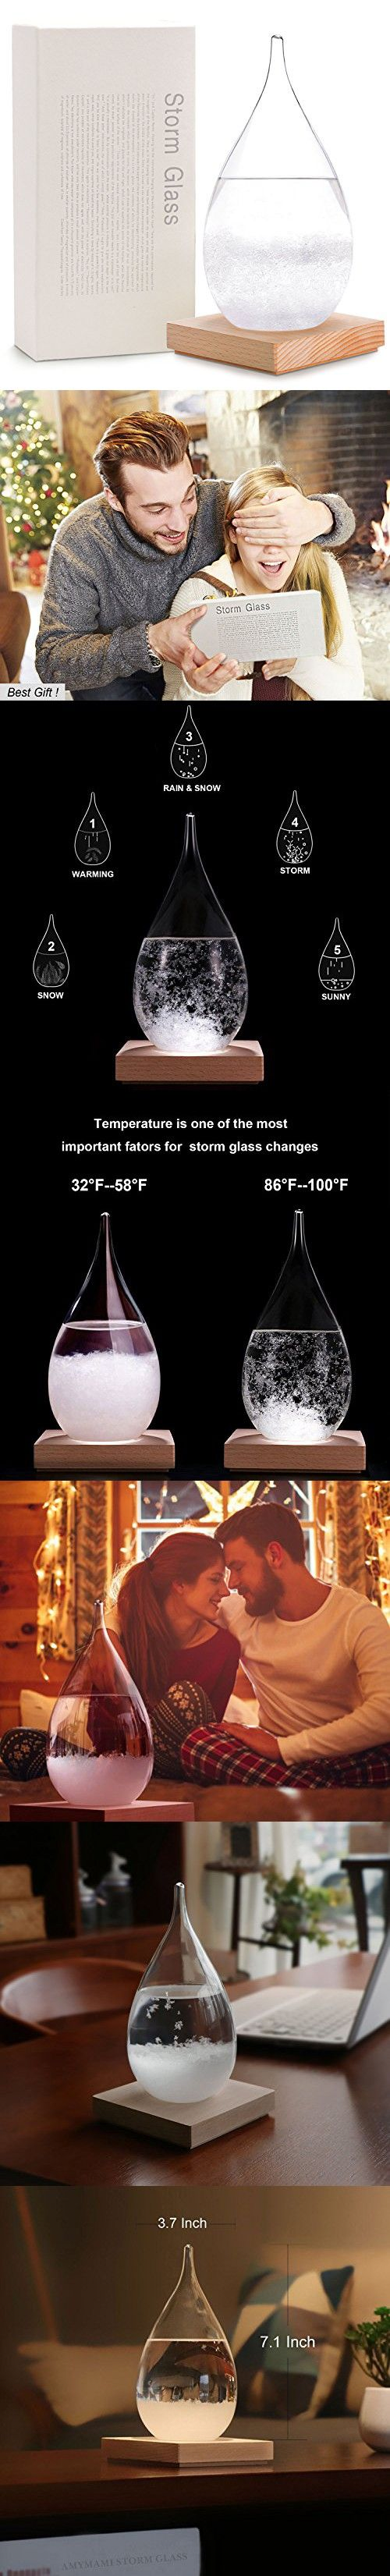 Amymami Storm Glass Weather Predictor Large (7.1''x3.7''x3.7''),Creative Desktop drops Weather Glass Bottle Forecaster Barometer,Weather Station Crafts Home Office Decor